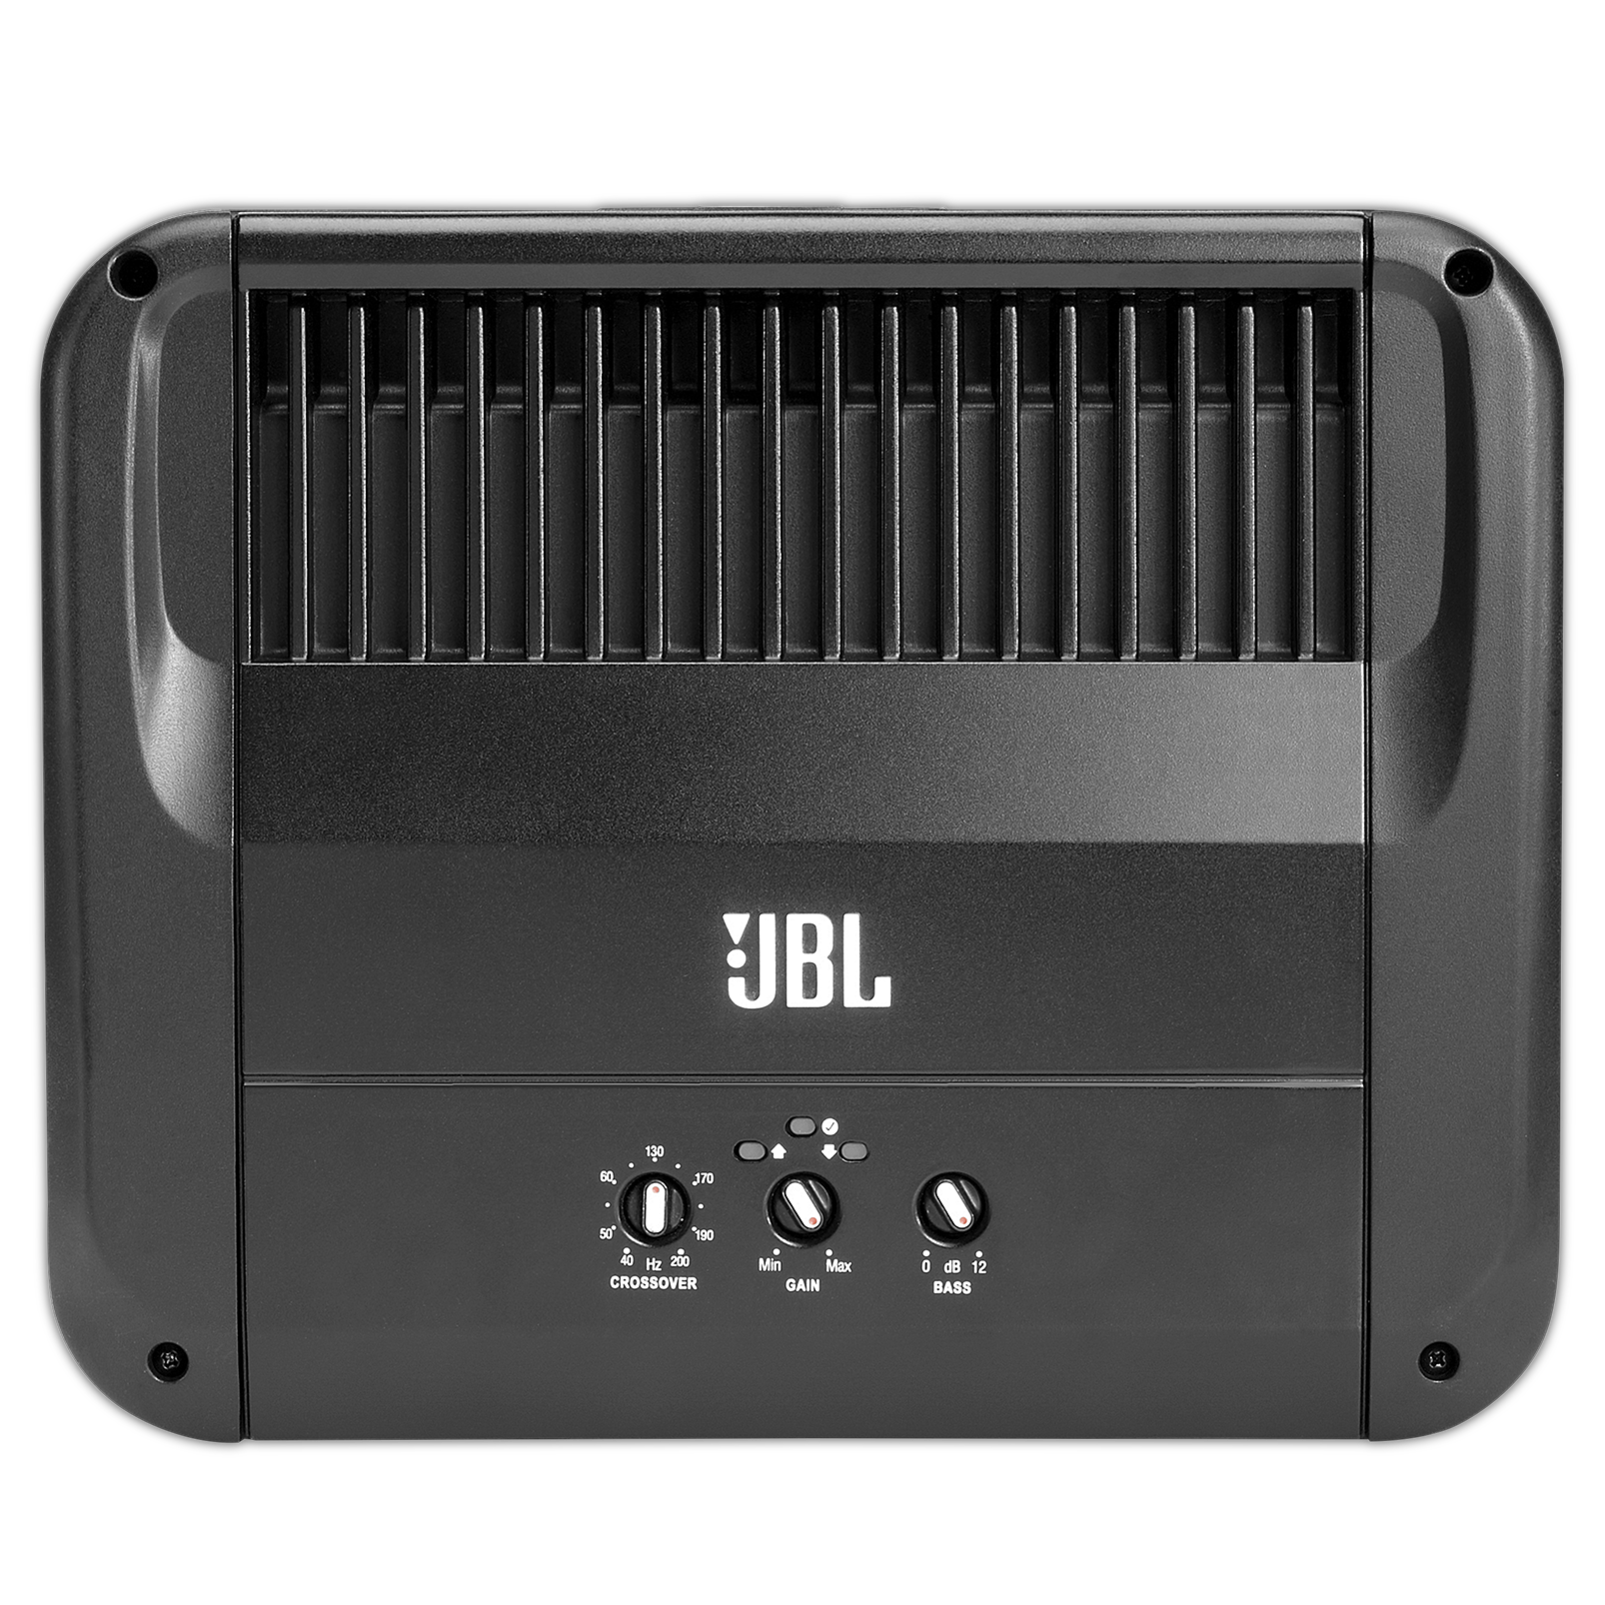 Jbl Bp 1200 Sub Wiring Diagram Library Crossover 100 Watt Woofer Amplifier Working And Circuit Source Alternate Views